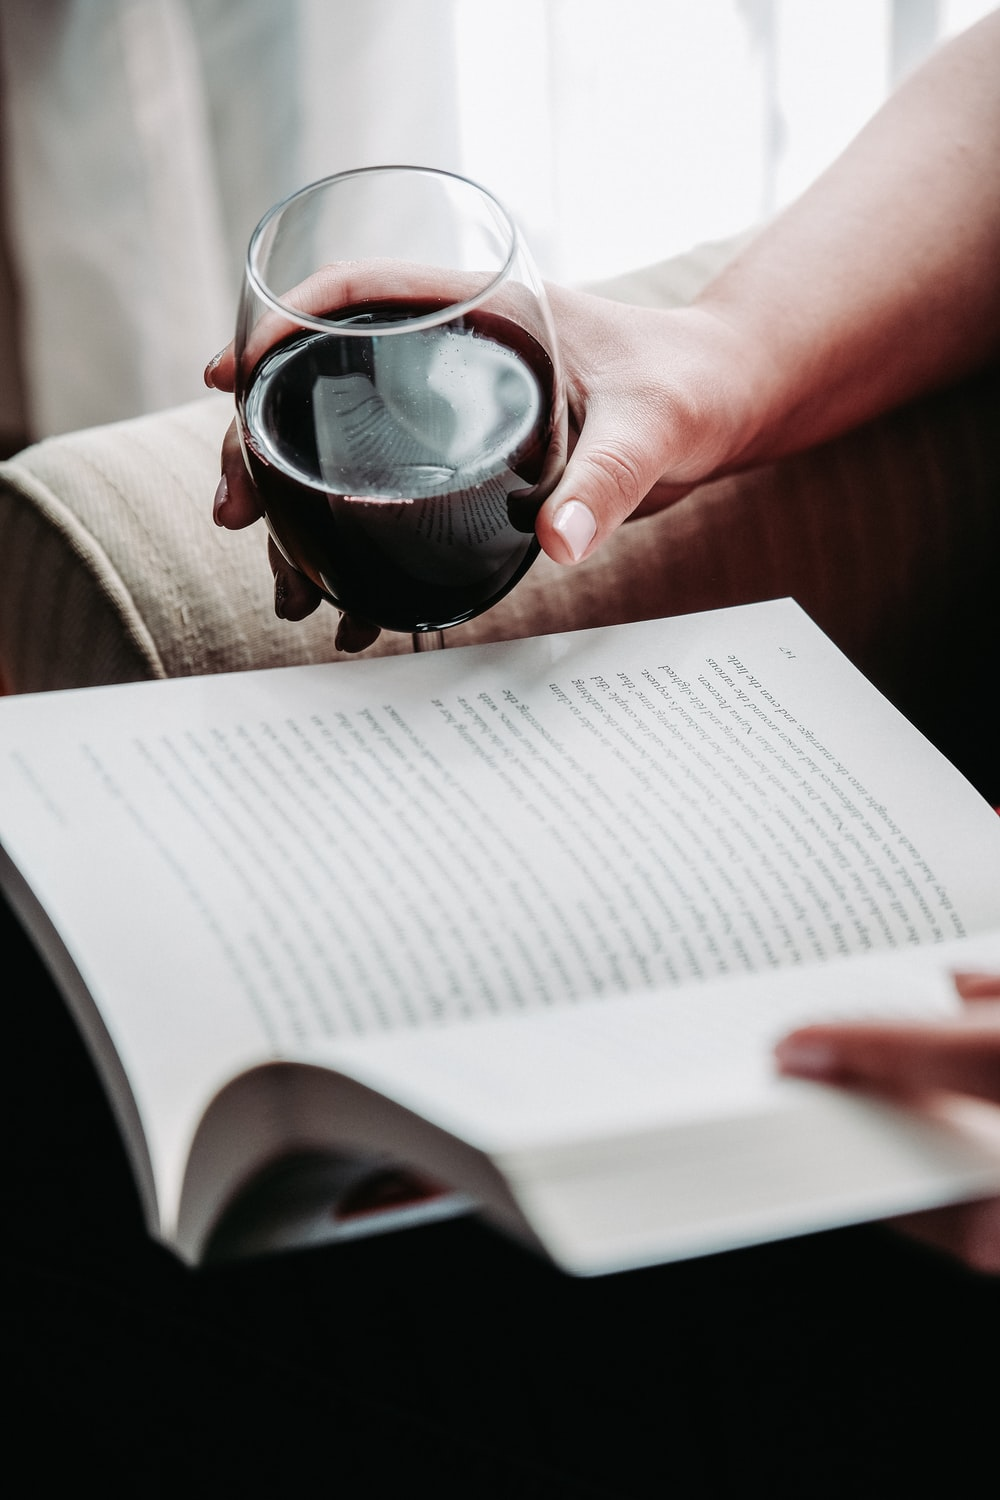 person holding goblet glass while holding book and reading